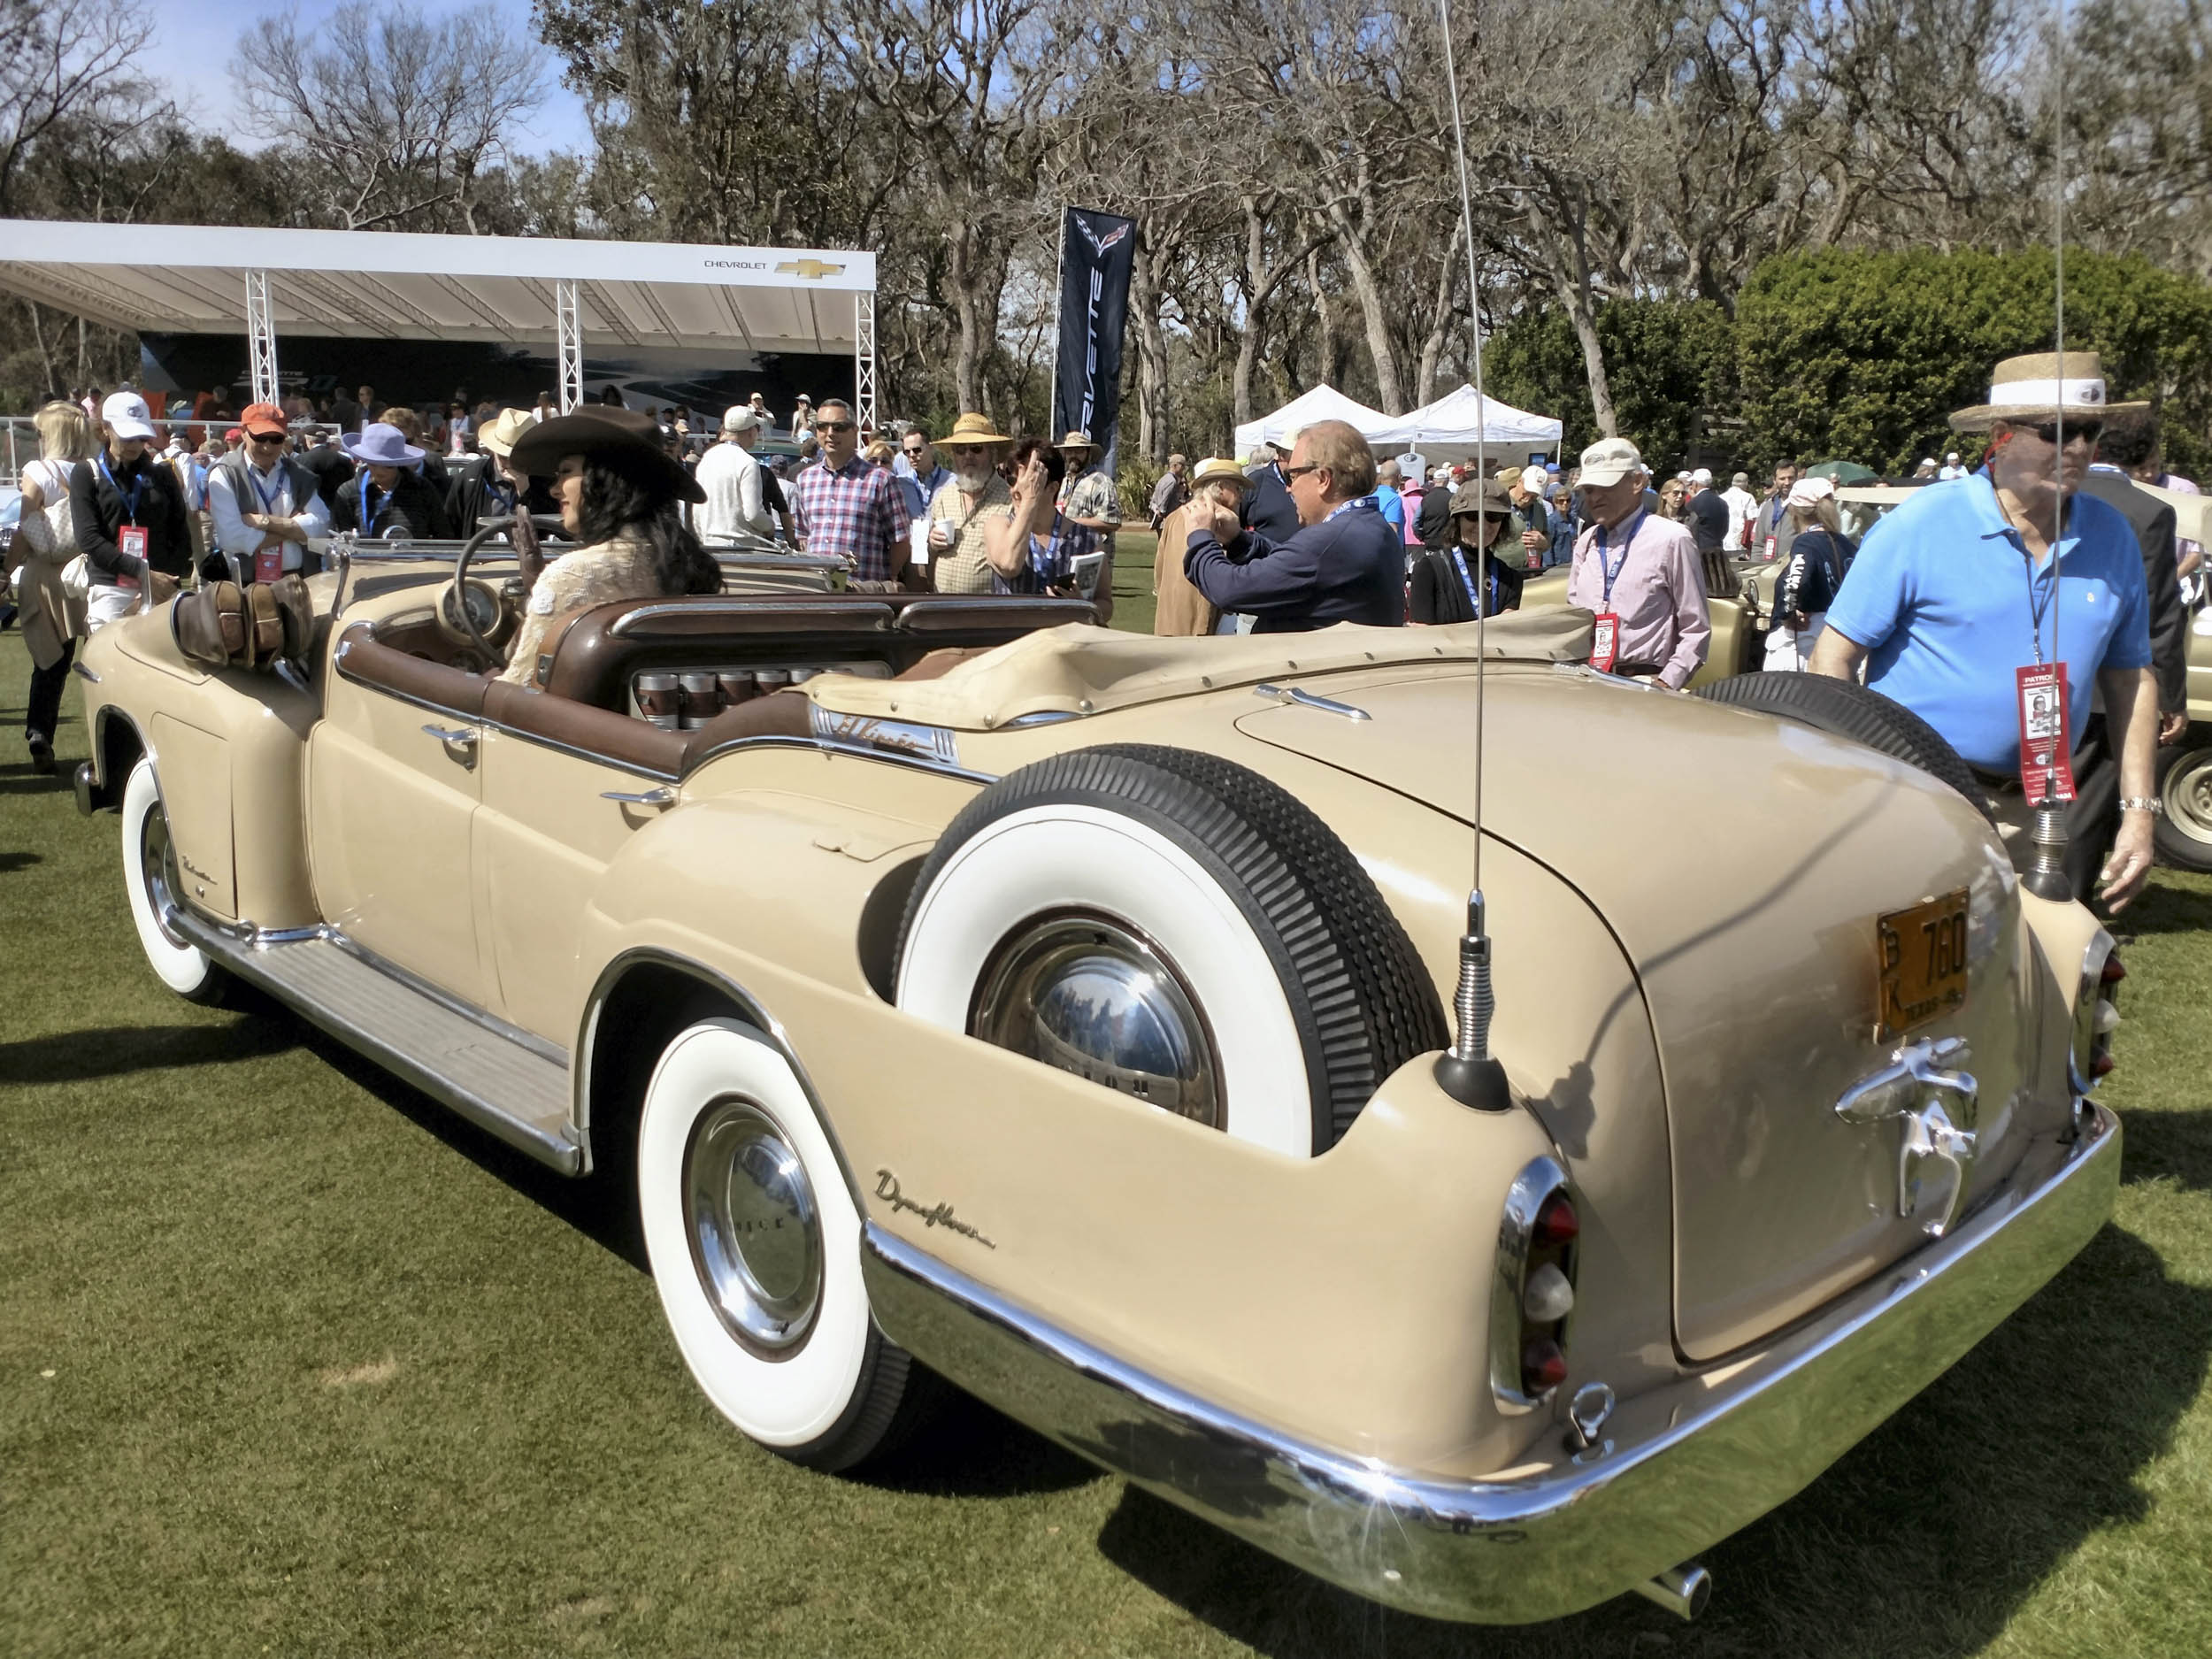 1949 Buick Roadmaster - Kleberg King Ranch El Kineno rear 3/4